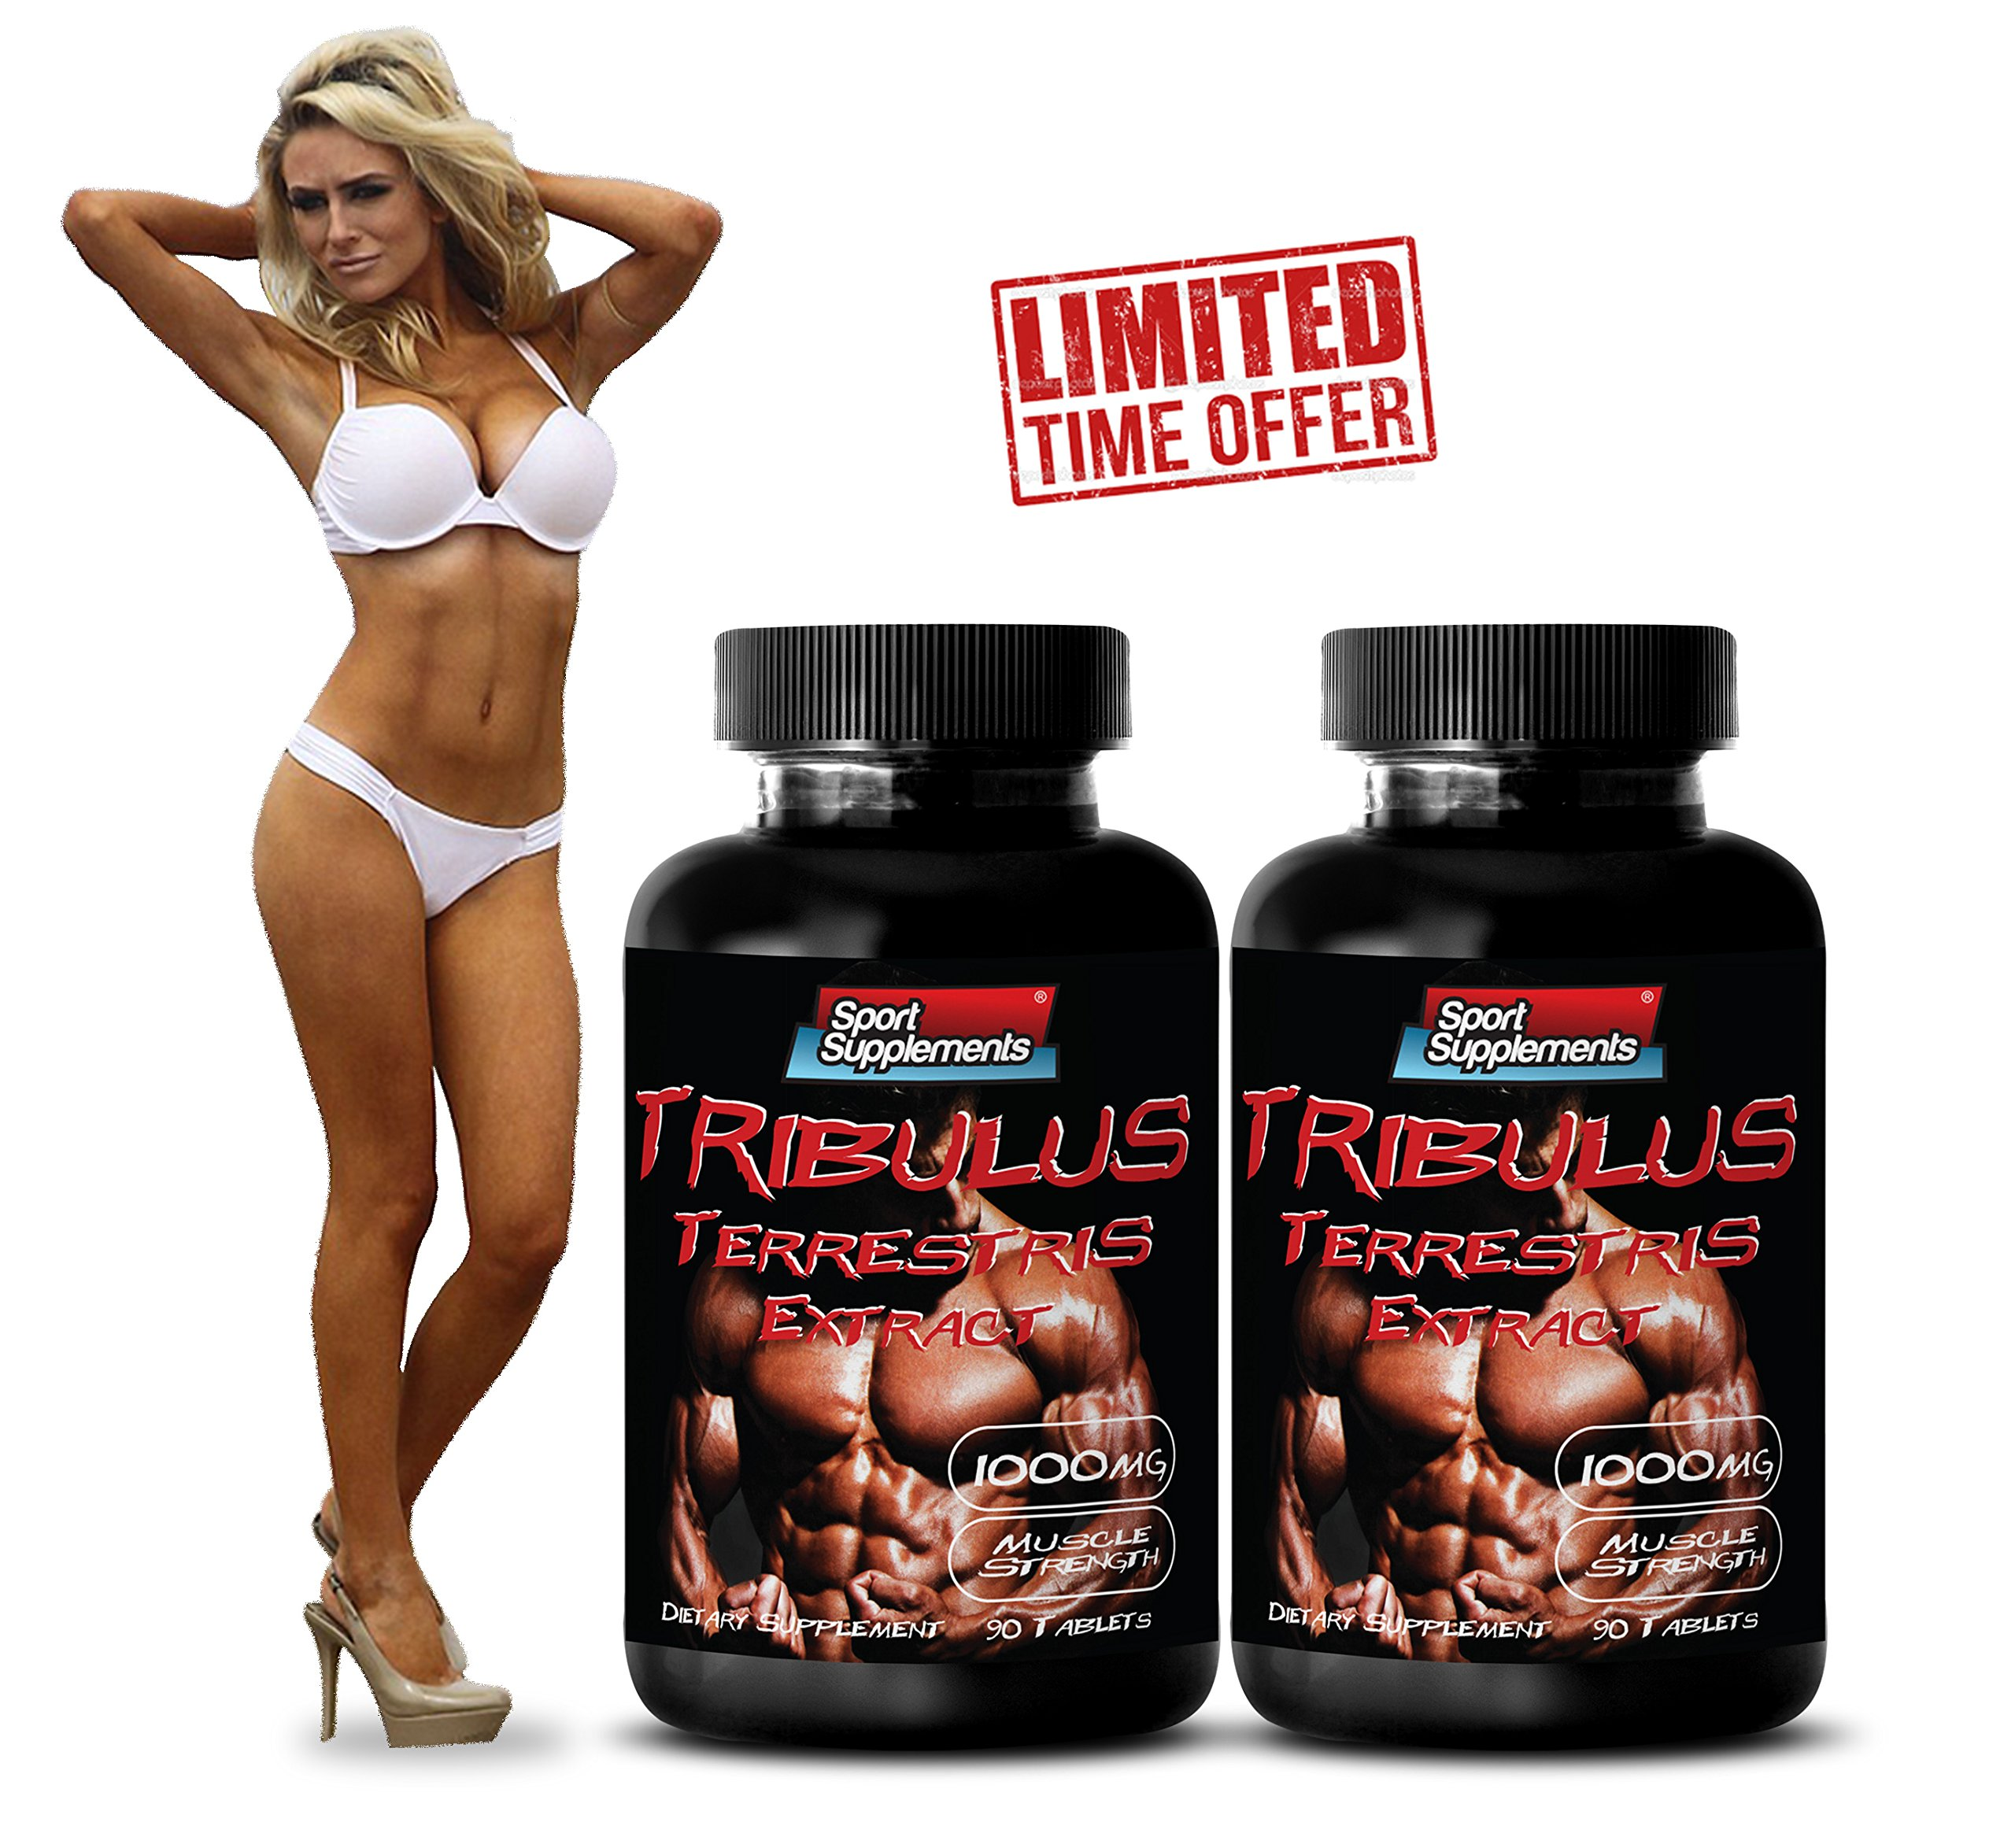 Testosterone Boost - TRIBULUS TERRESTRIS EXTRACT 1000mg (with Standardized 400mg Natural Saponins) - Tribulus terrestris root - 2 Bottles 180 Tablets